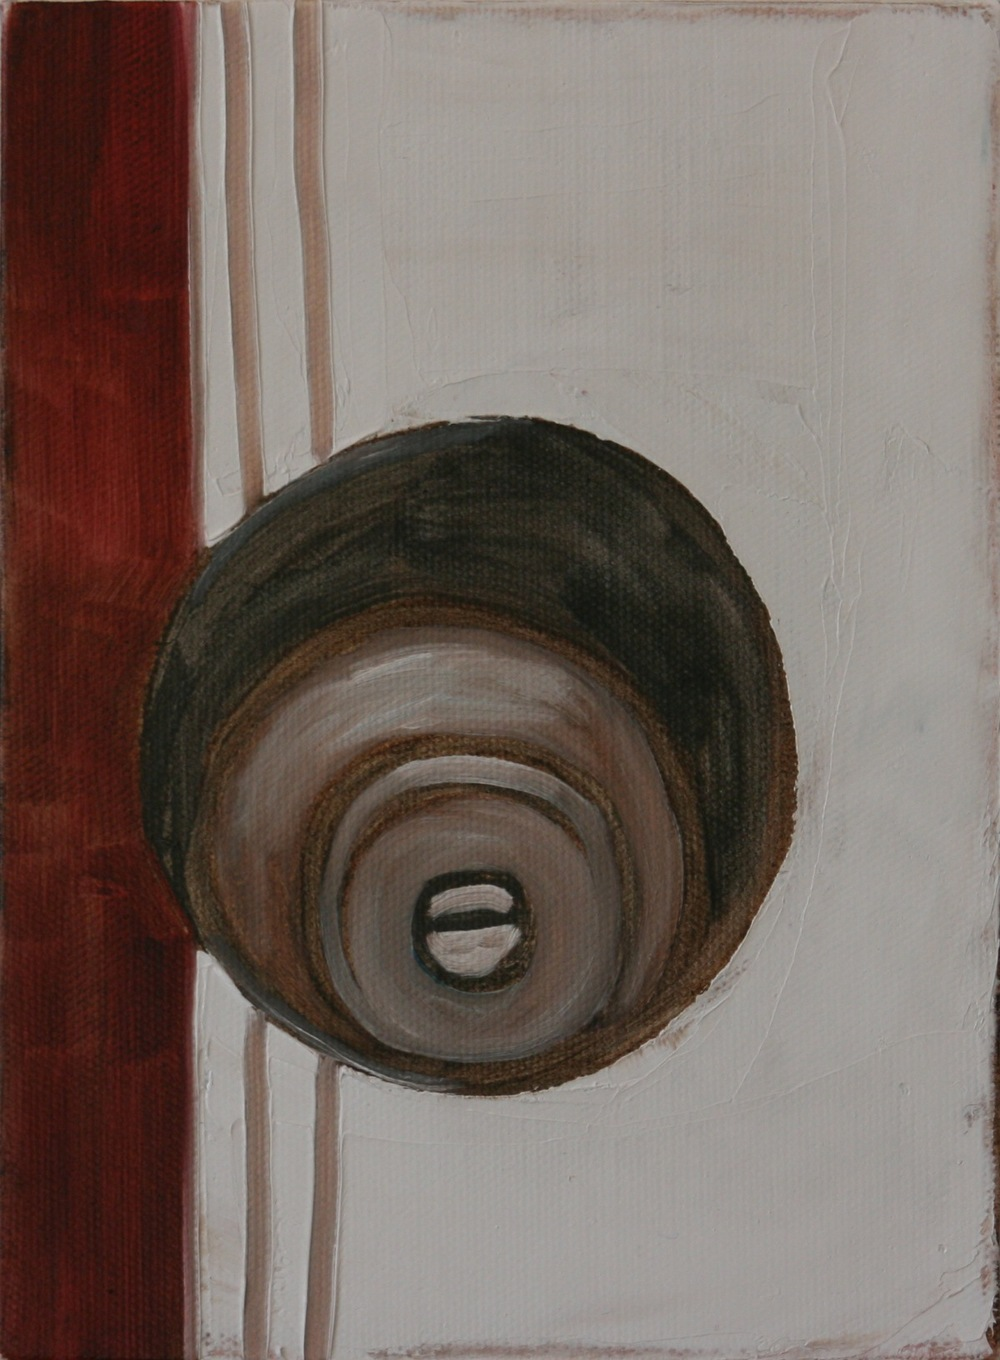 "Knob. 2008. Oil on Canvas. 8"" x 6"""